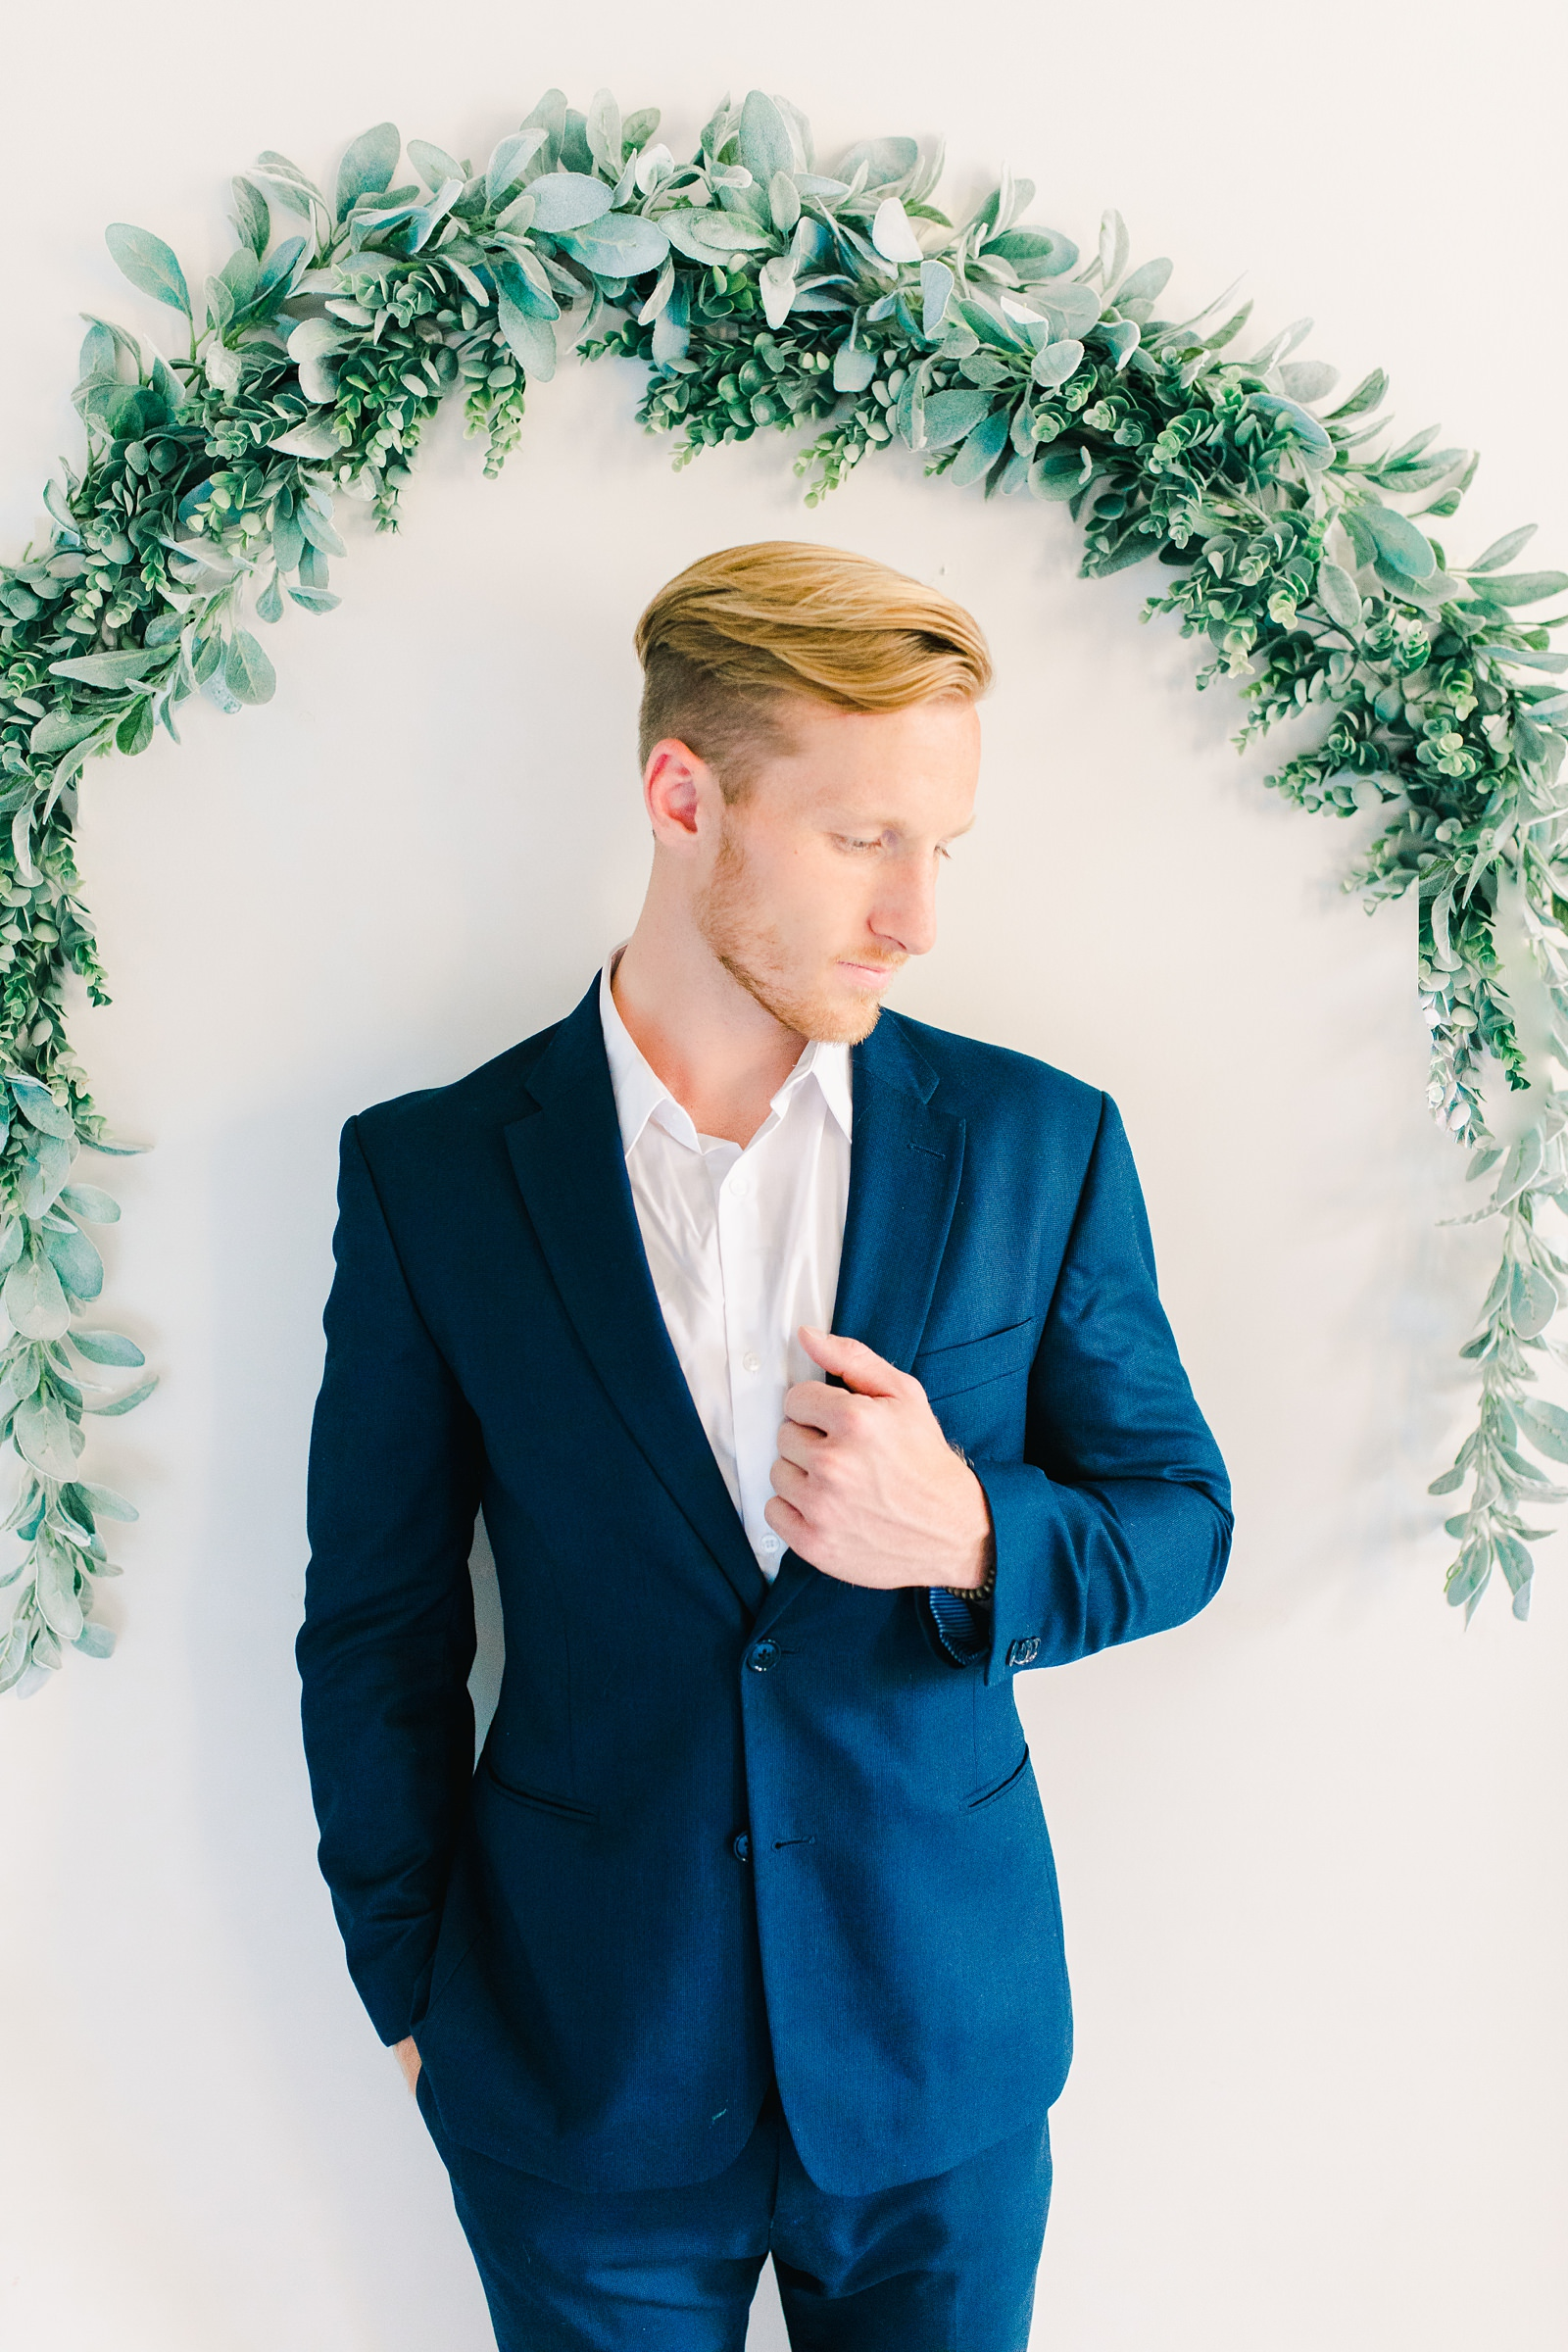 Utah wedding photography, groom in navy blue suit and white tie in front of white wall with eucalyptus greenery garland arch